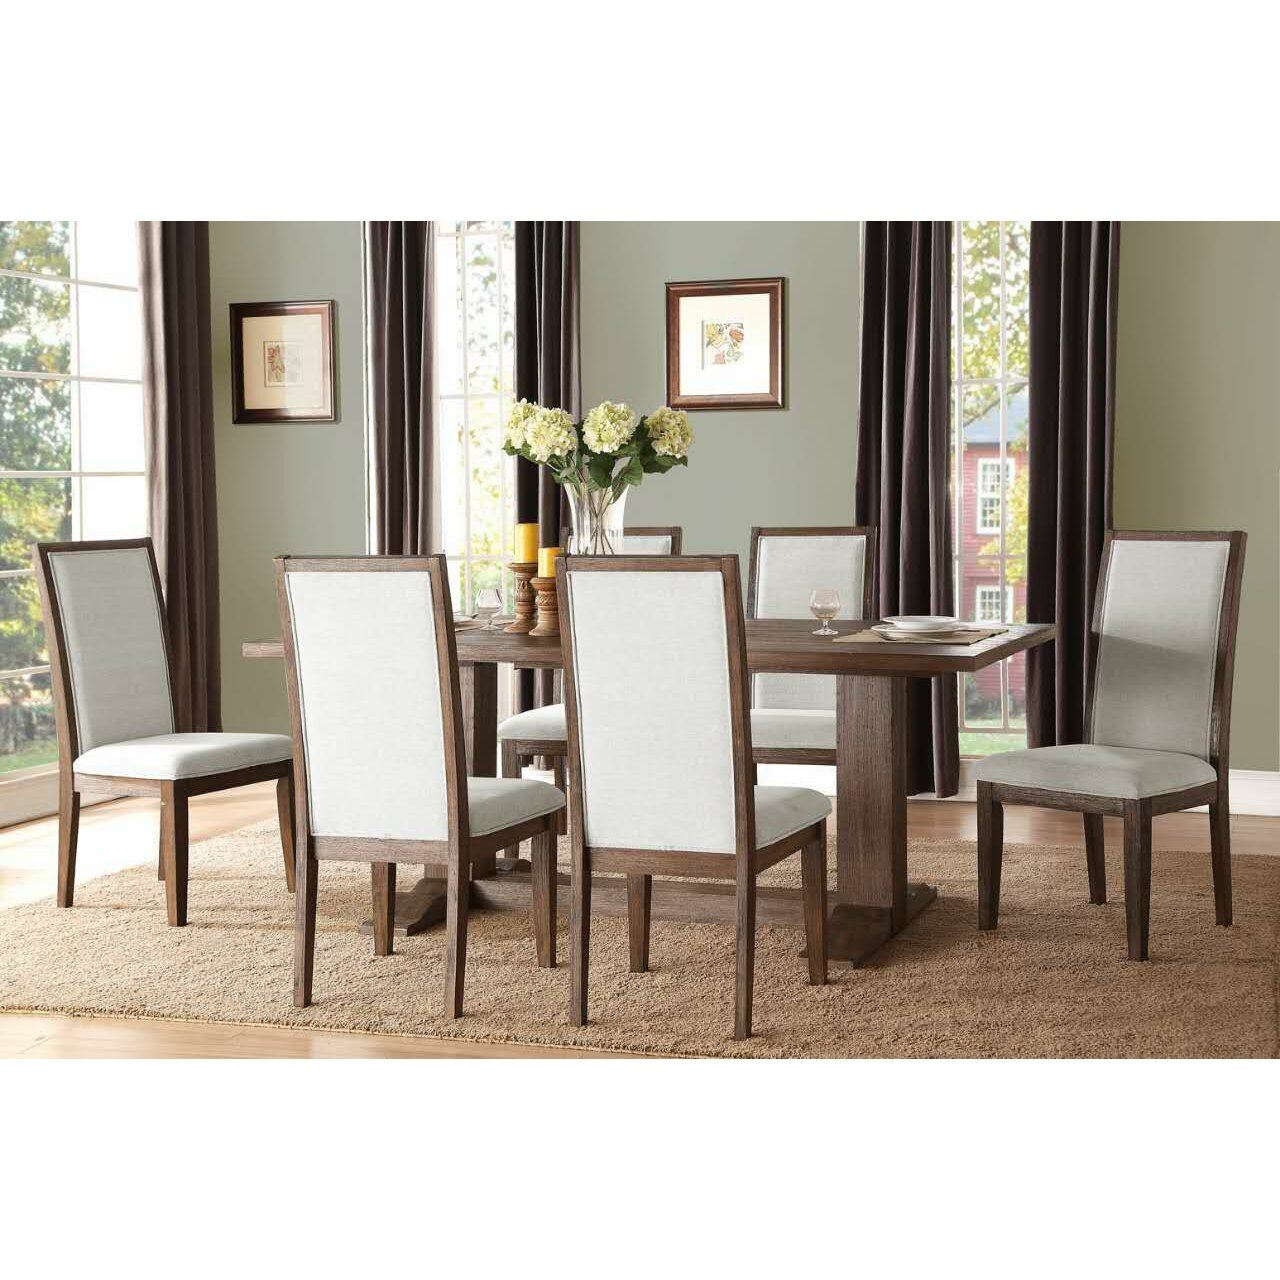 Dining Room Accent Pieces: Ultimate Accents Urban 7 Piece Dining Set